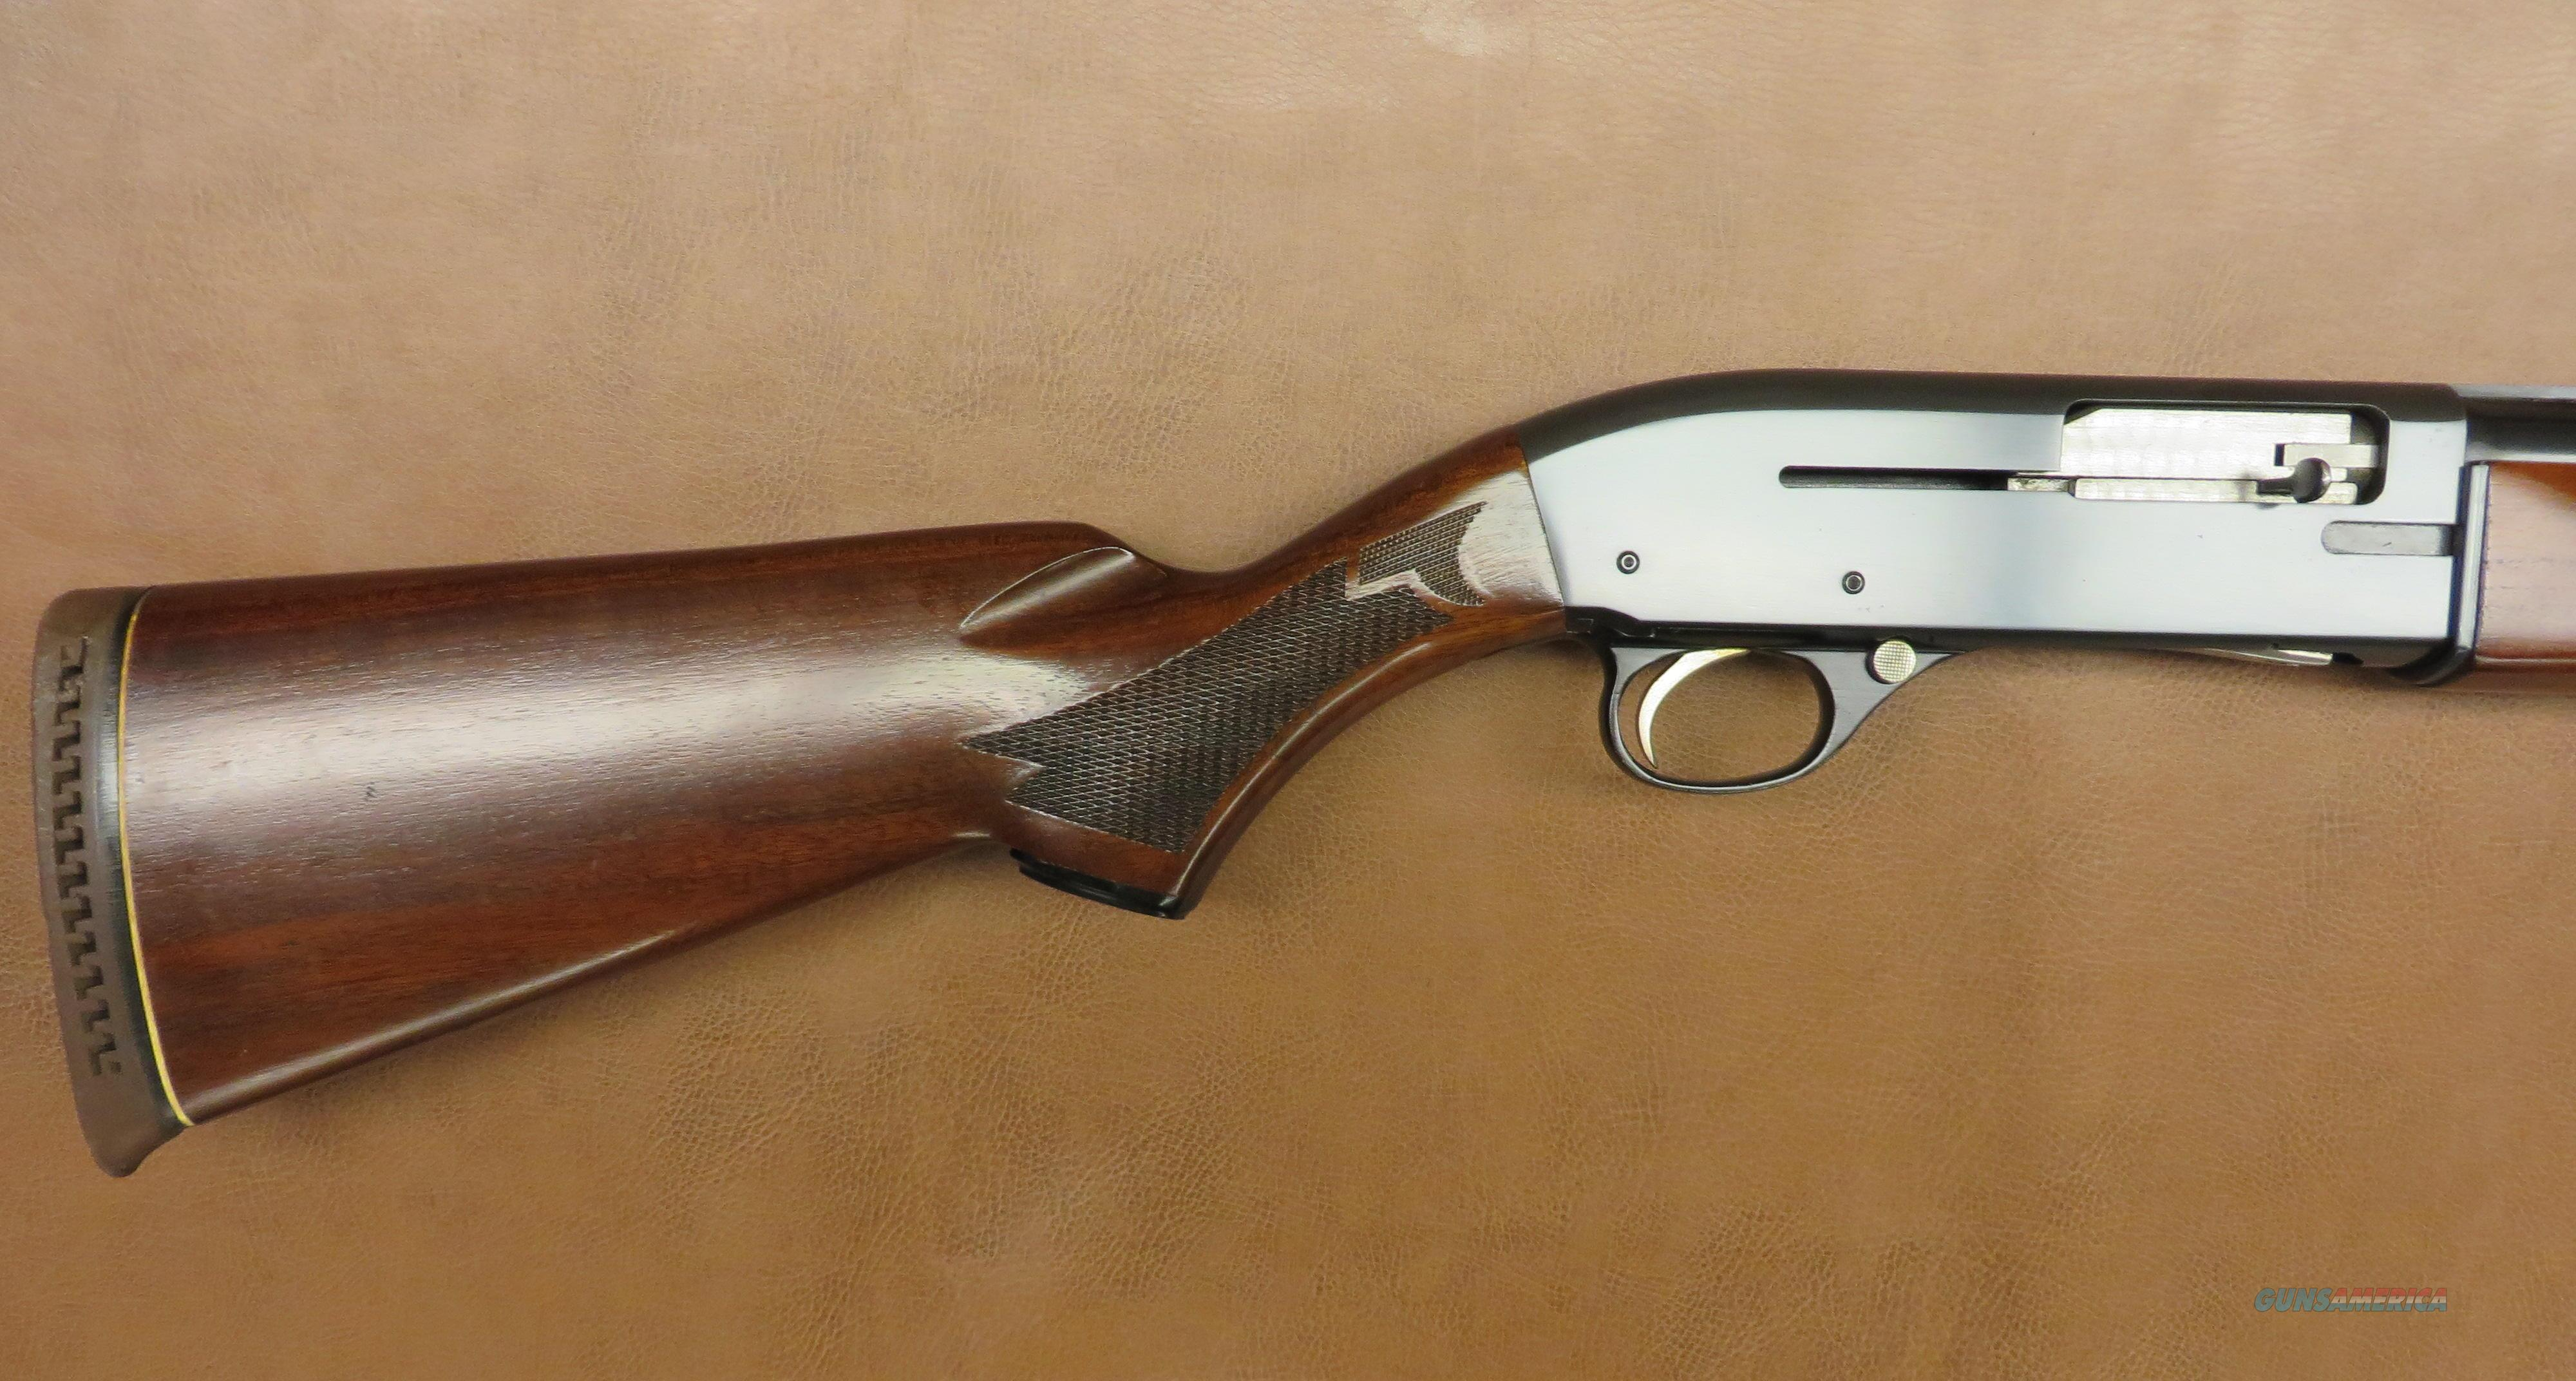 High Standard Model C2011 Supermatic Deluxe  Guns > Shotguns > High Standard Shotguns